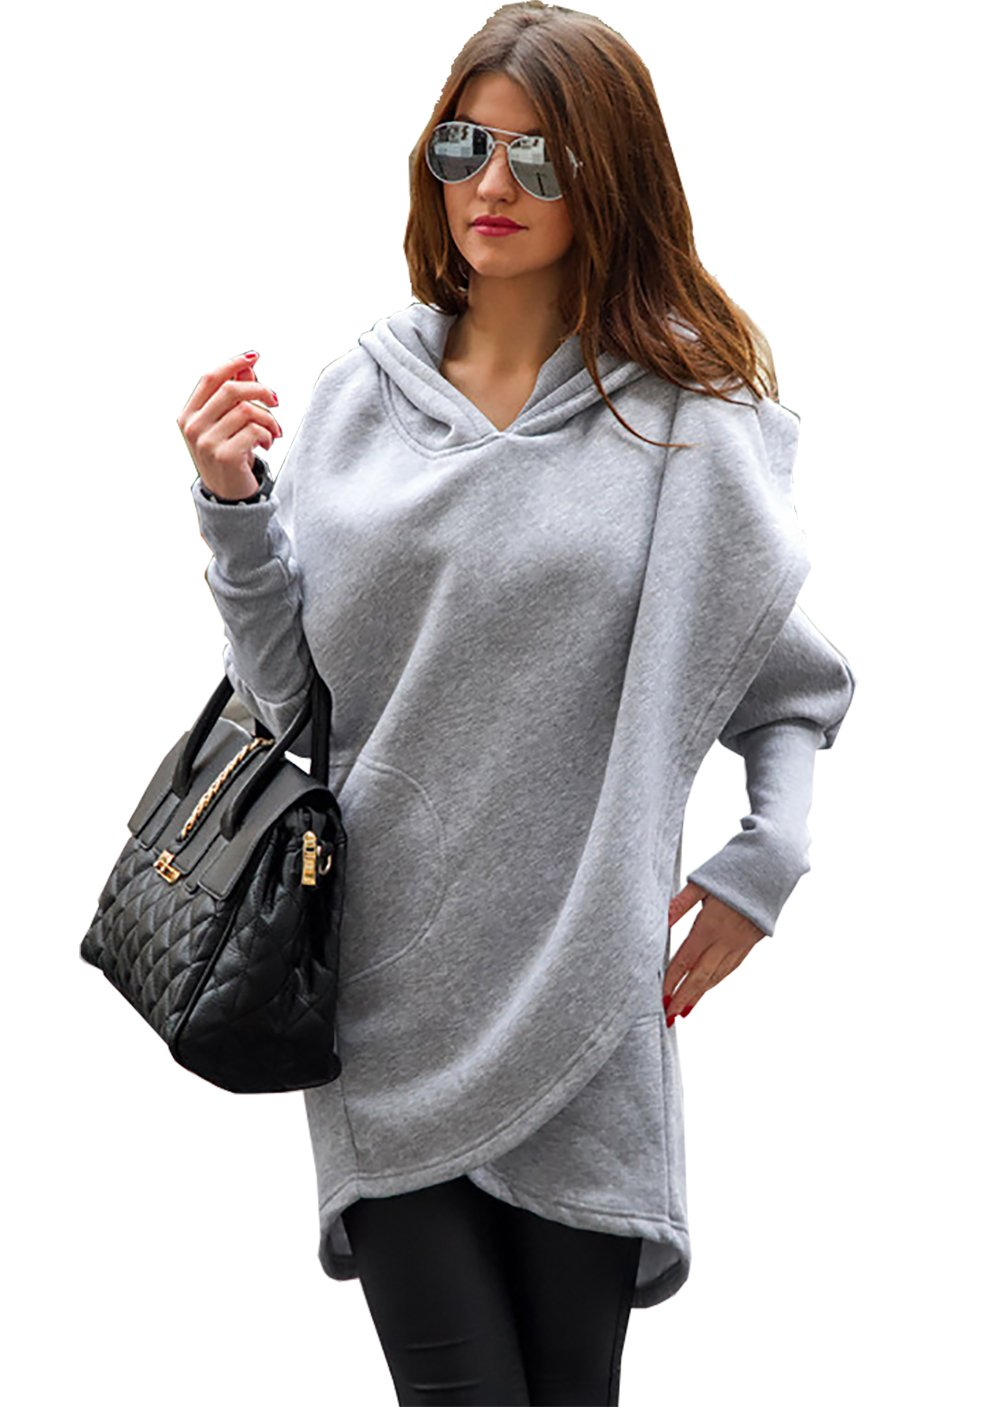 CoCo fashion Women's 2017 Winter Long Hooded Coat Casual Jackets Warm Slim Overcoat Outwear (Small, Style 2_Pary Grey)